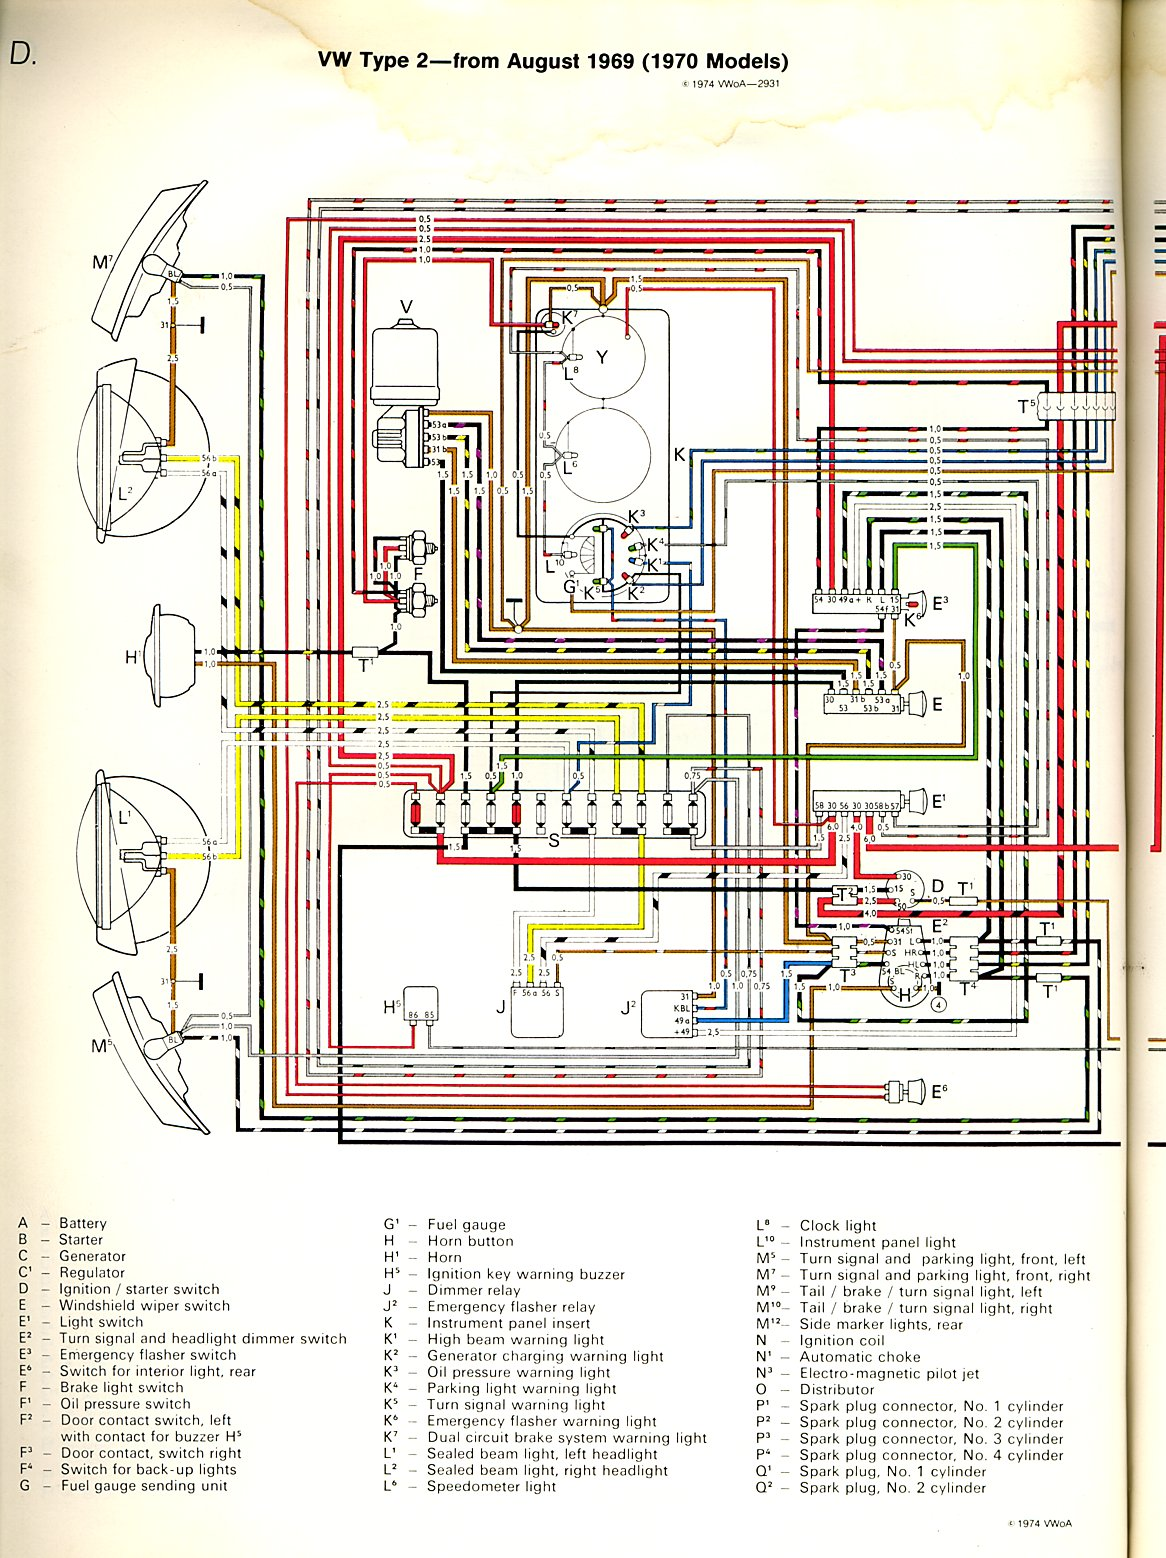 1967 volkswagen bus wiring schematic bookmark about wiring diagram 1971 VW Bus Specs